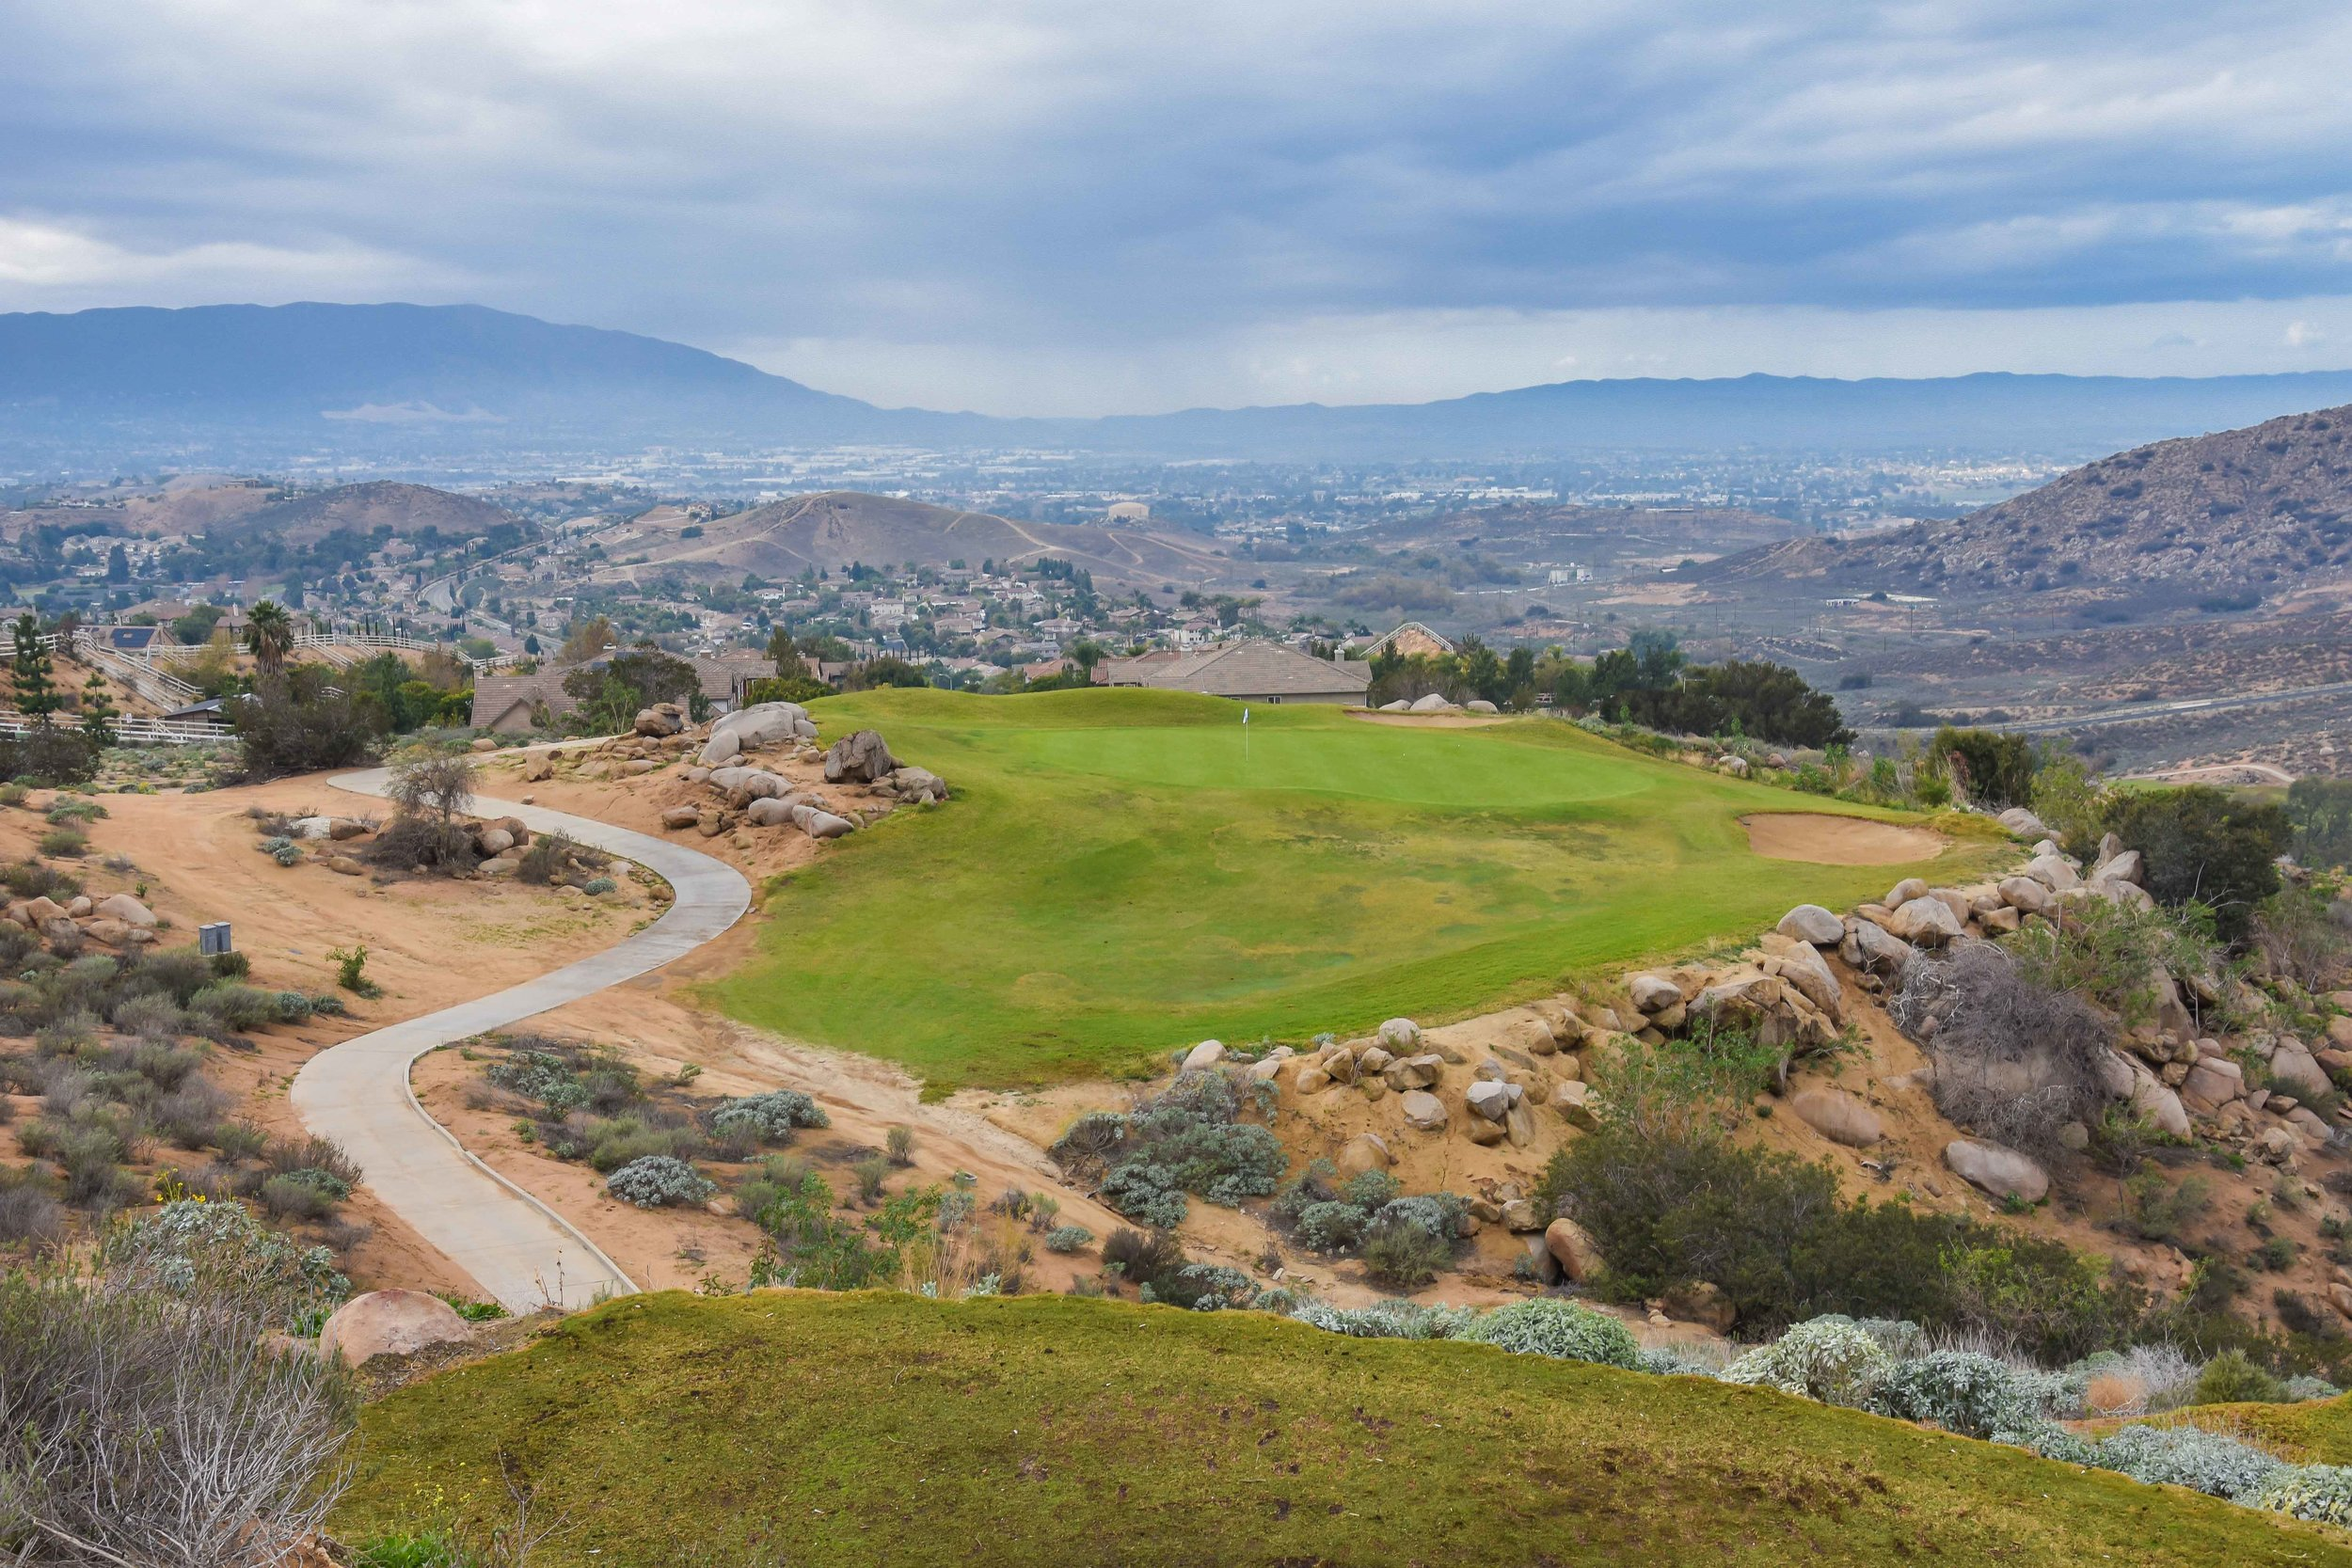 There are lots of great views and elevation changes at Hidden Valley.